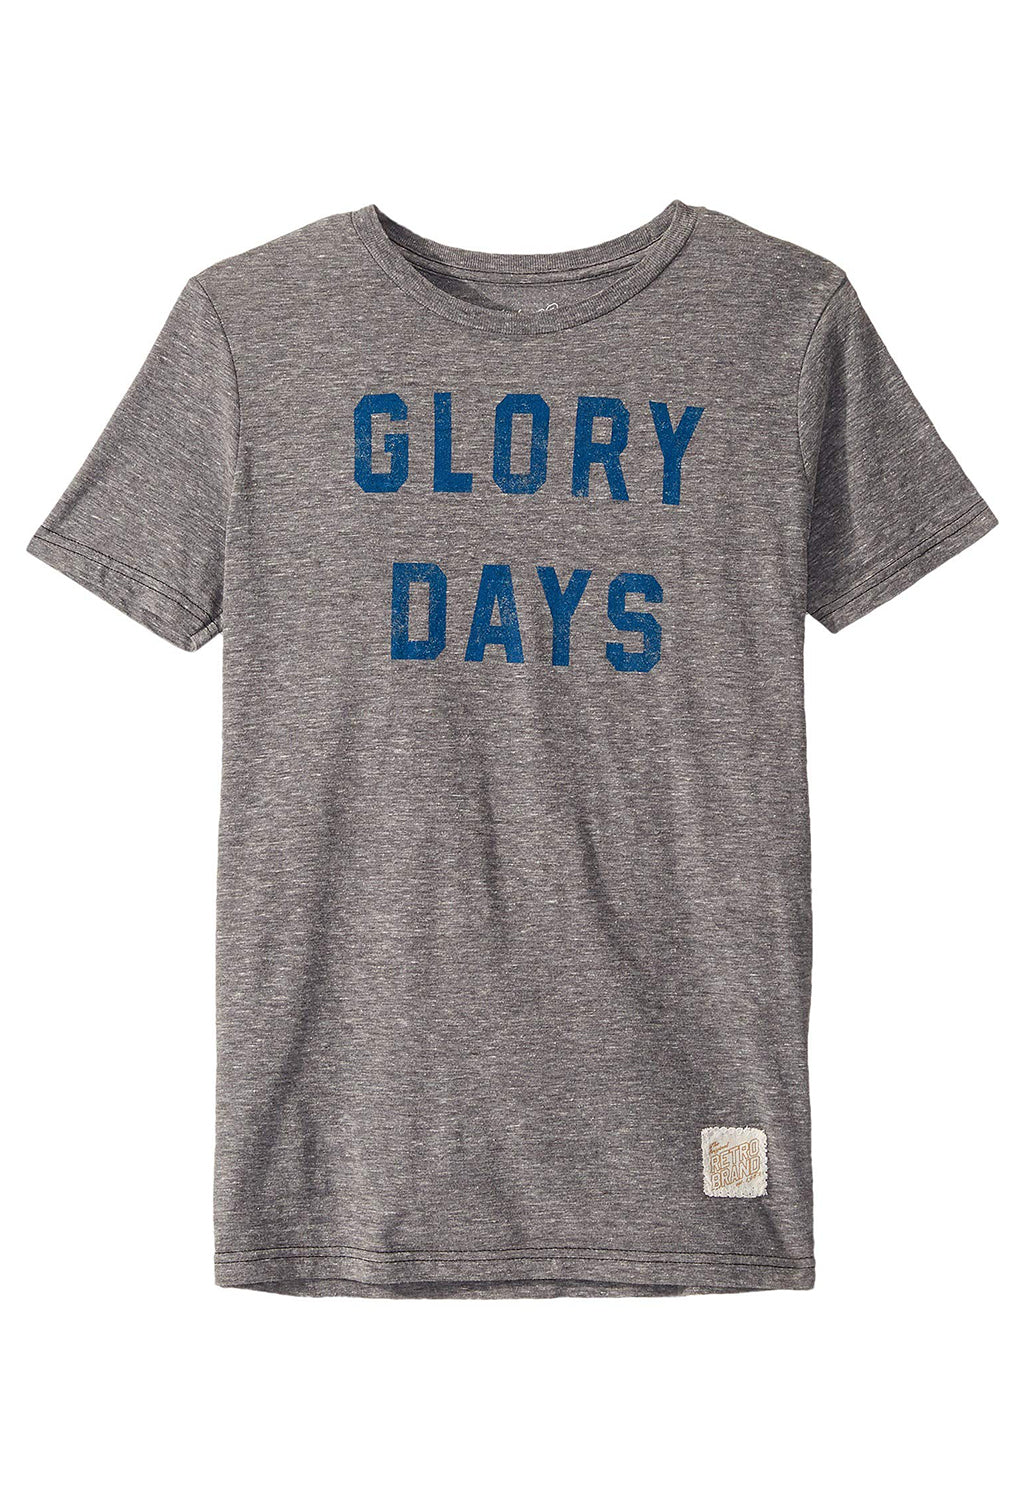 Glory Days Graphic Tee - RUST & Co.